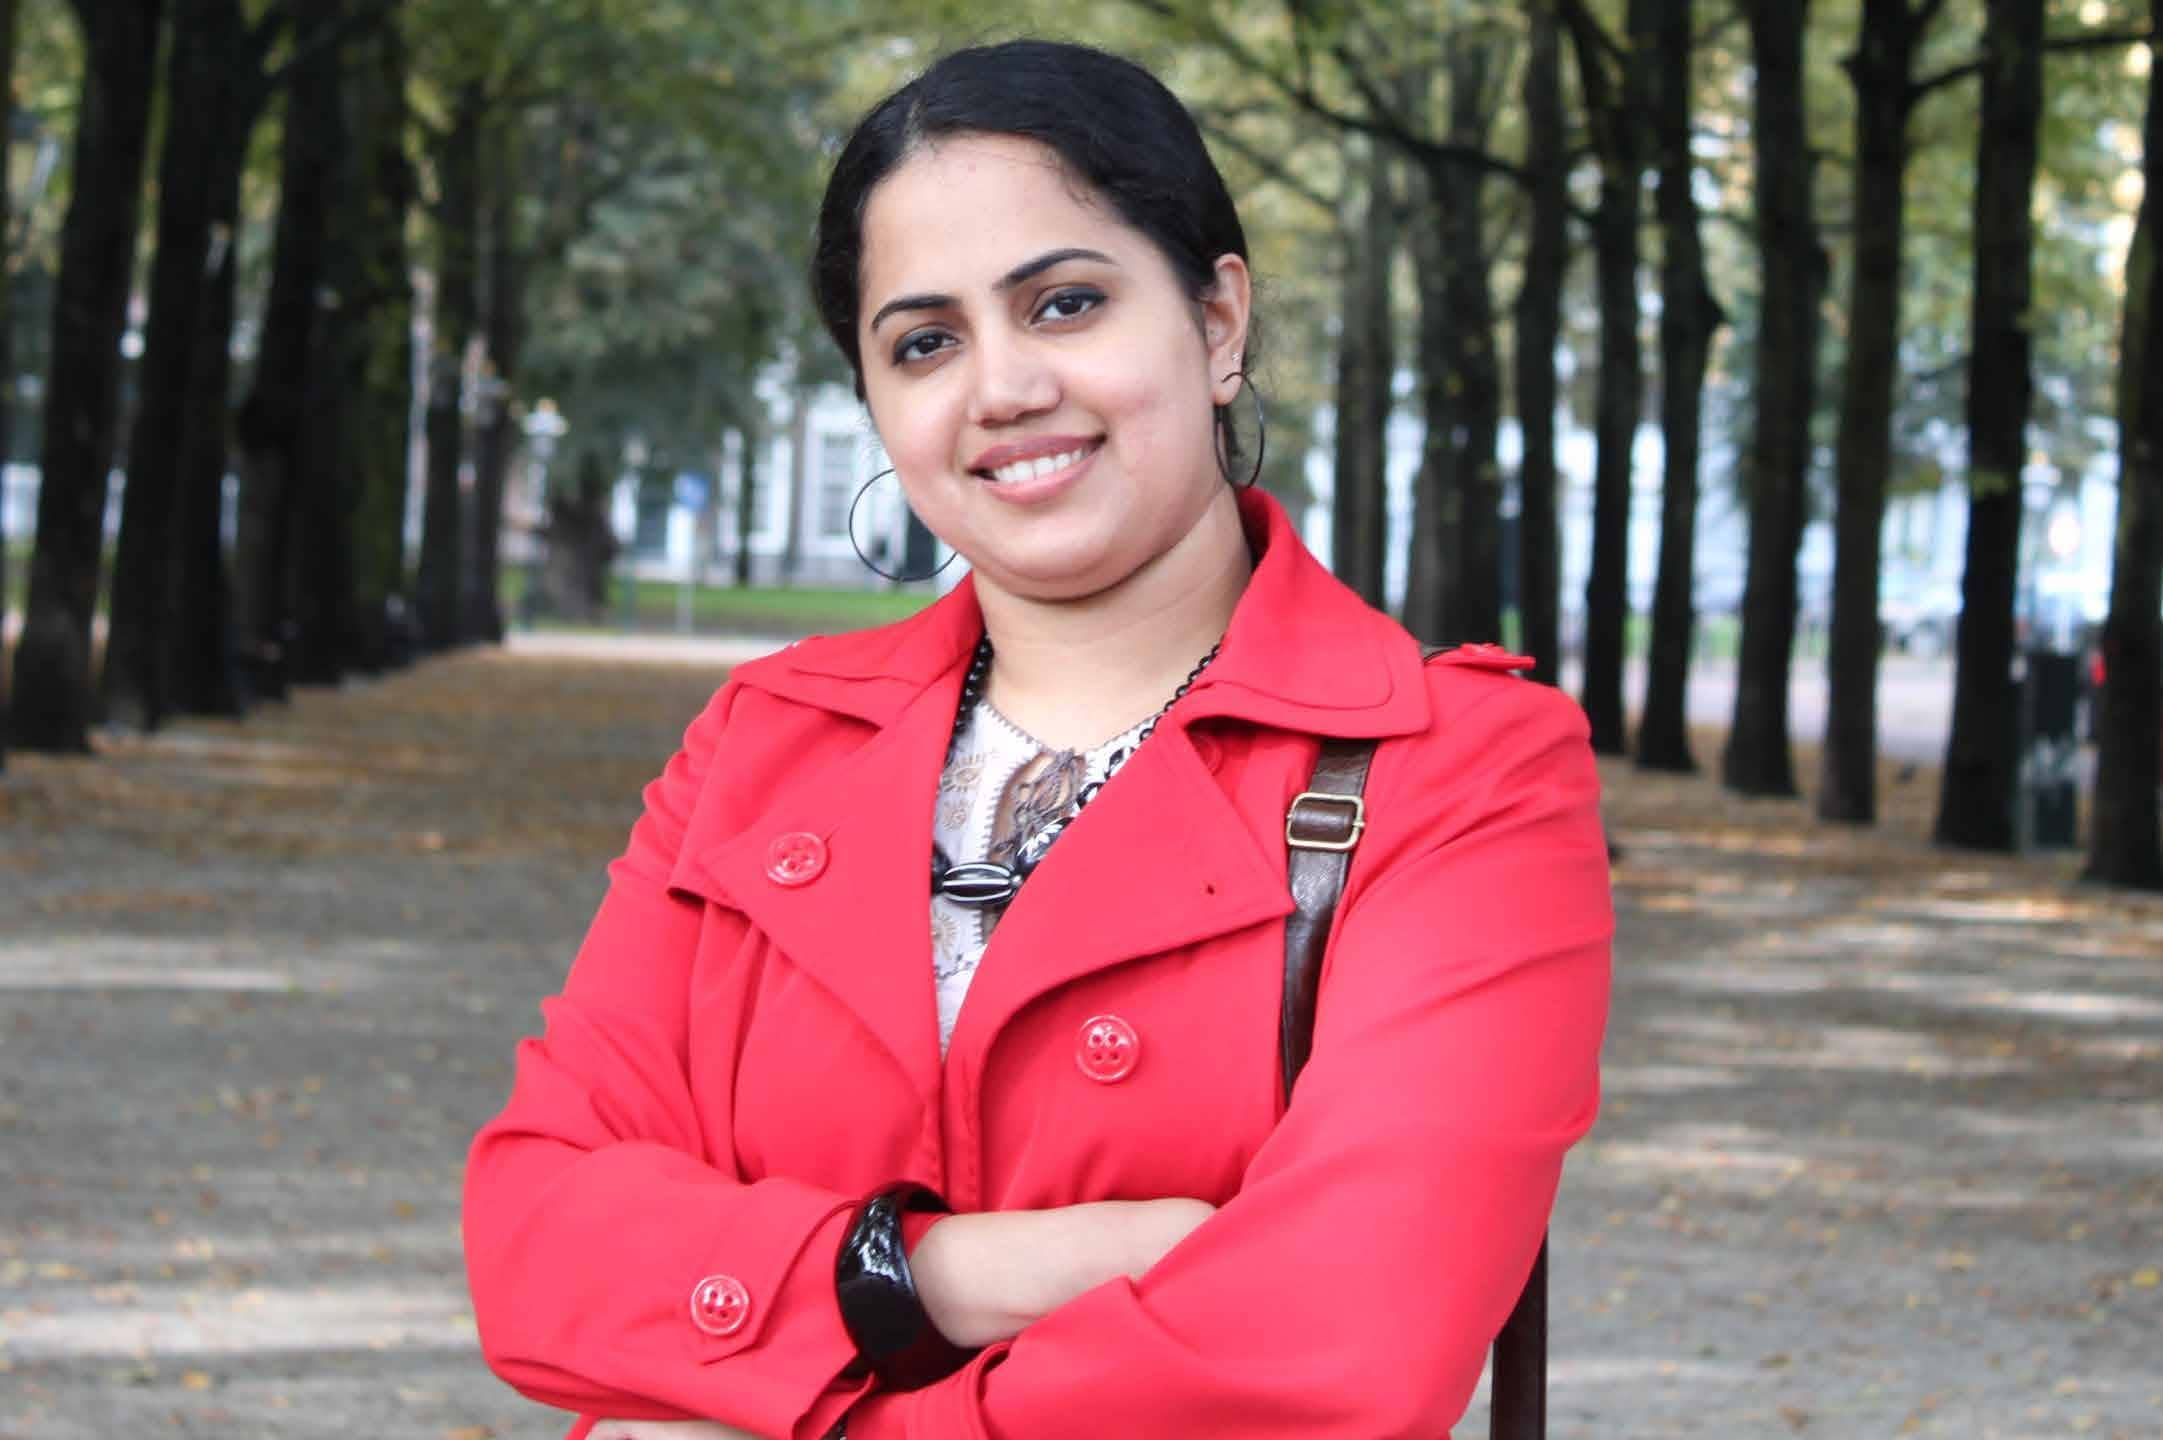 Fareen Arshad Director, GBM Consulting Ltd UK & Managing Director, Pratna Design Studio